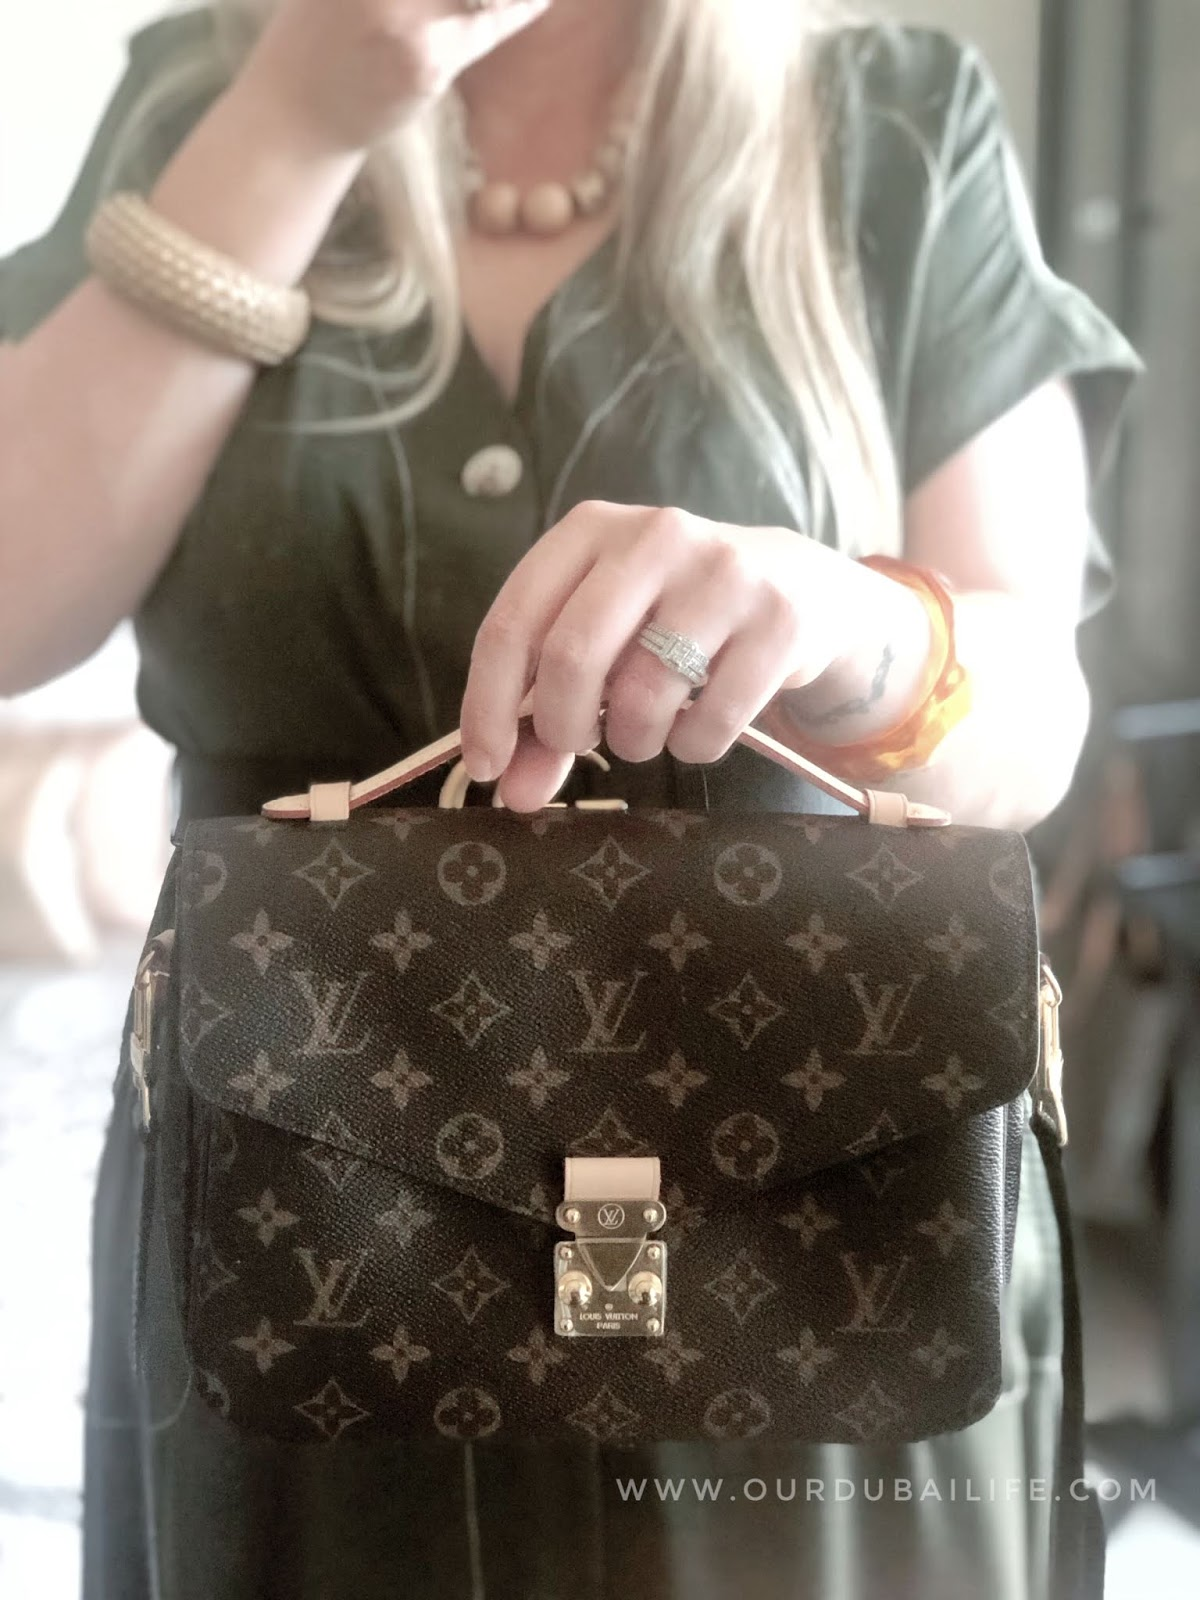 Louis Vuitton Pochette Métis : Luxury Reveal https://www.ourdubailife.com/